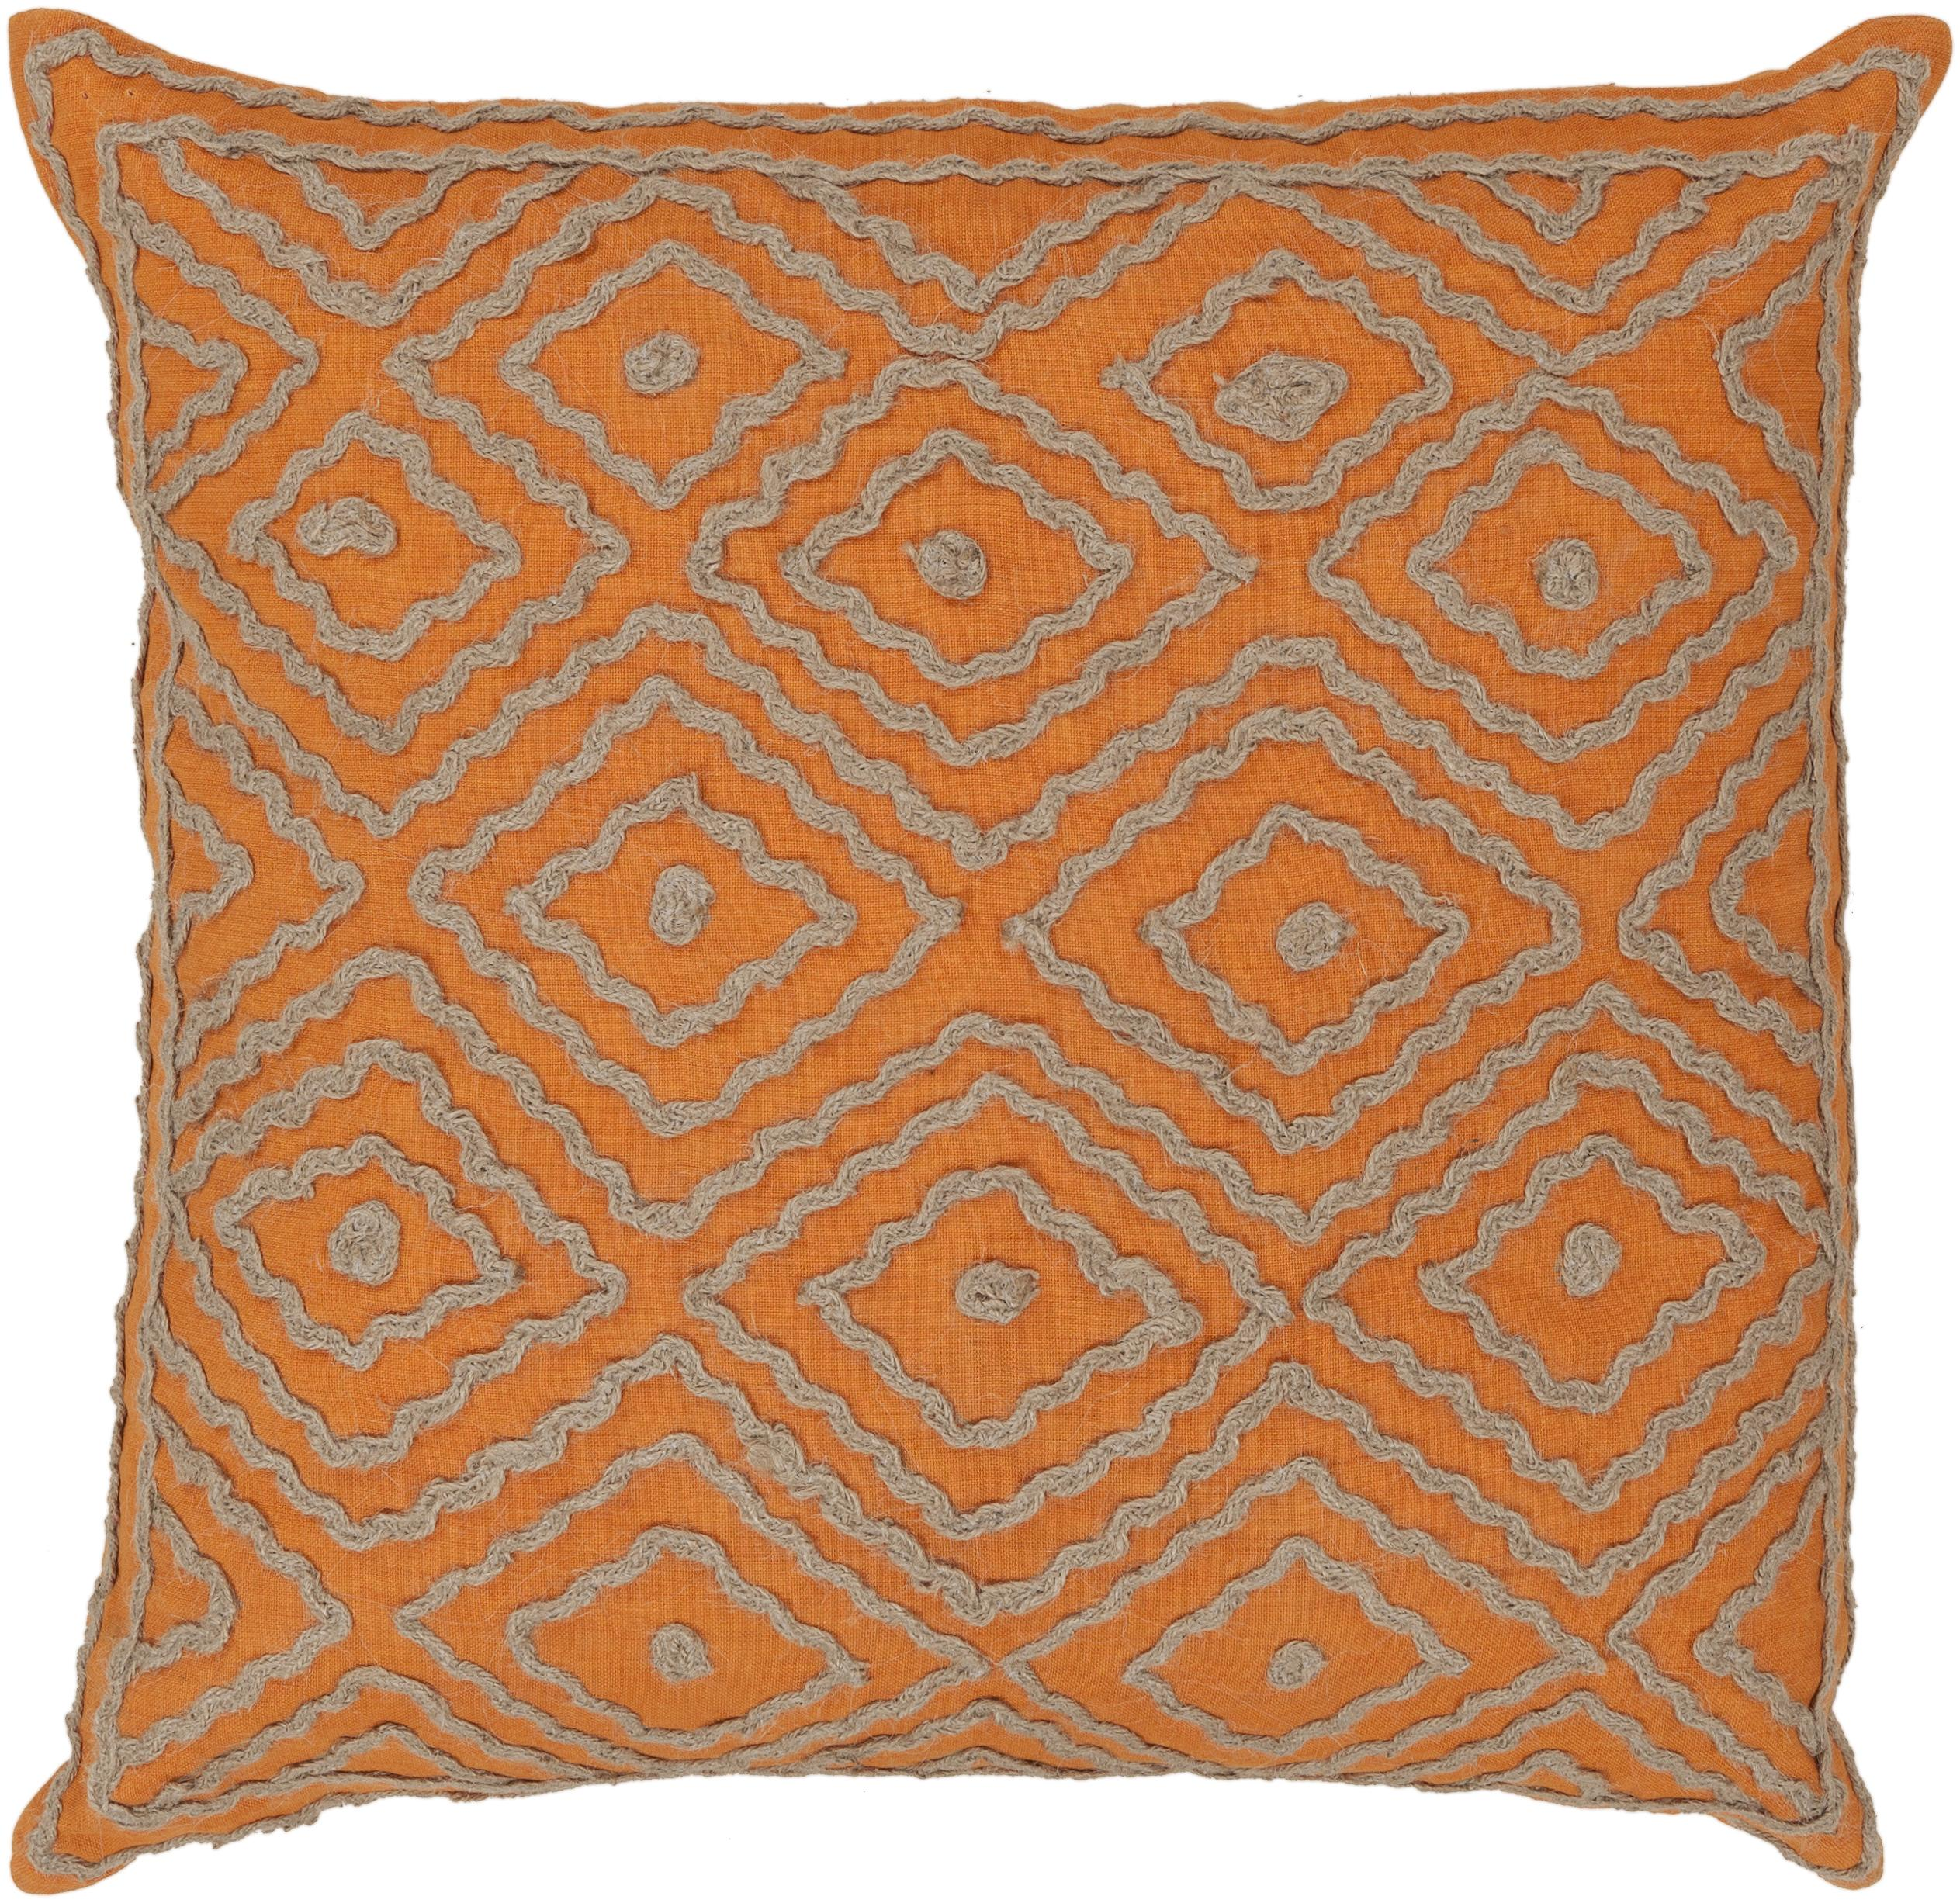 "Surya Rugs Pillows 22"" x 22"" Pillow - Item Number: LD029-2222P"